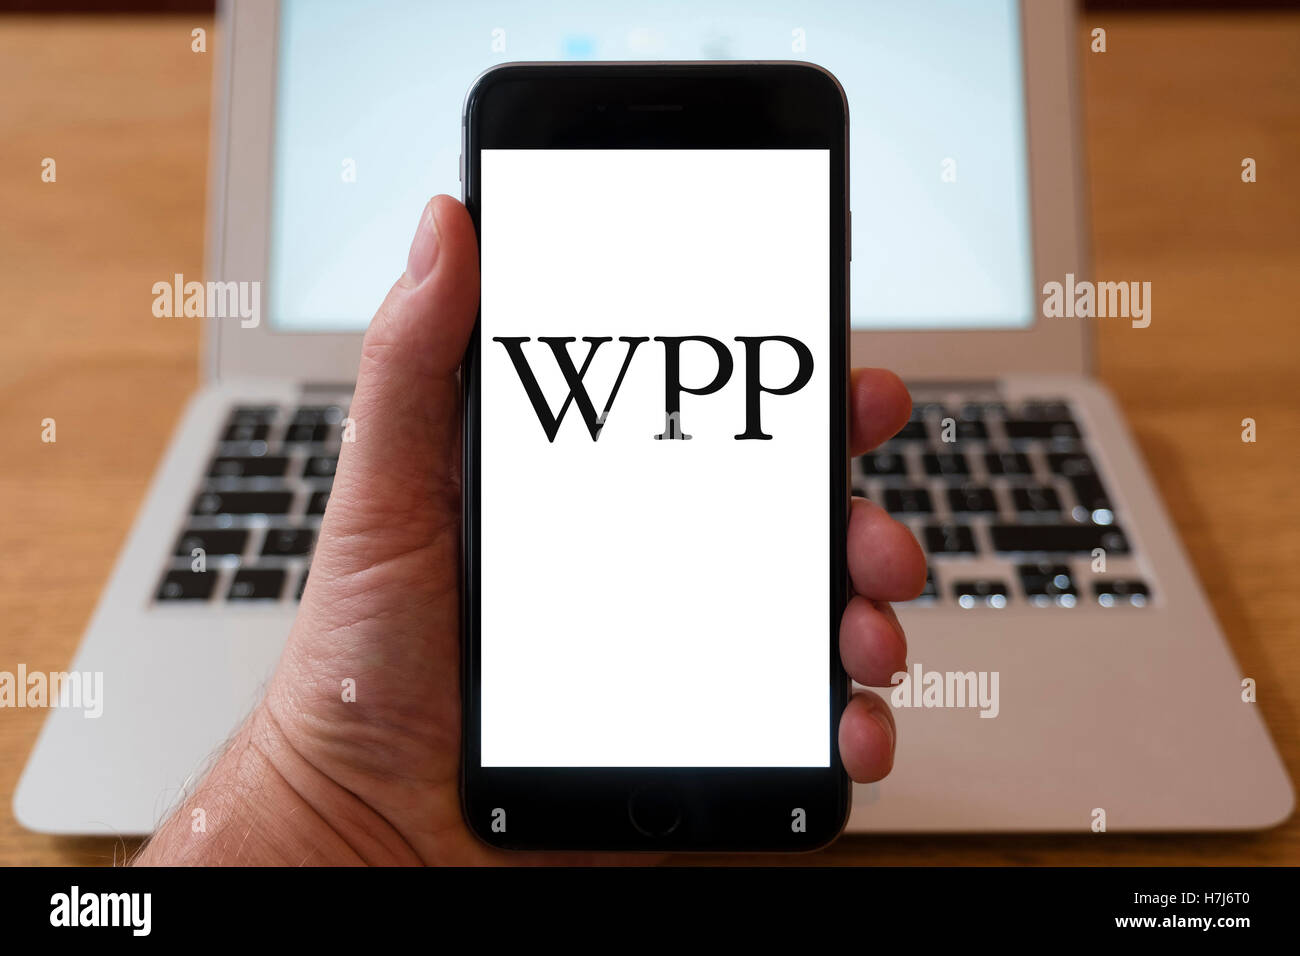 Using iPhone smart phone to display logo of WPP , British multinational advertising and public relations company - Stock Image